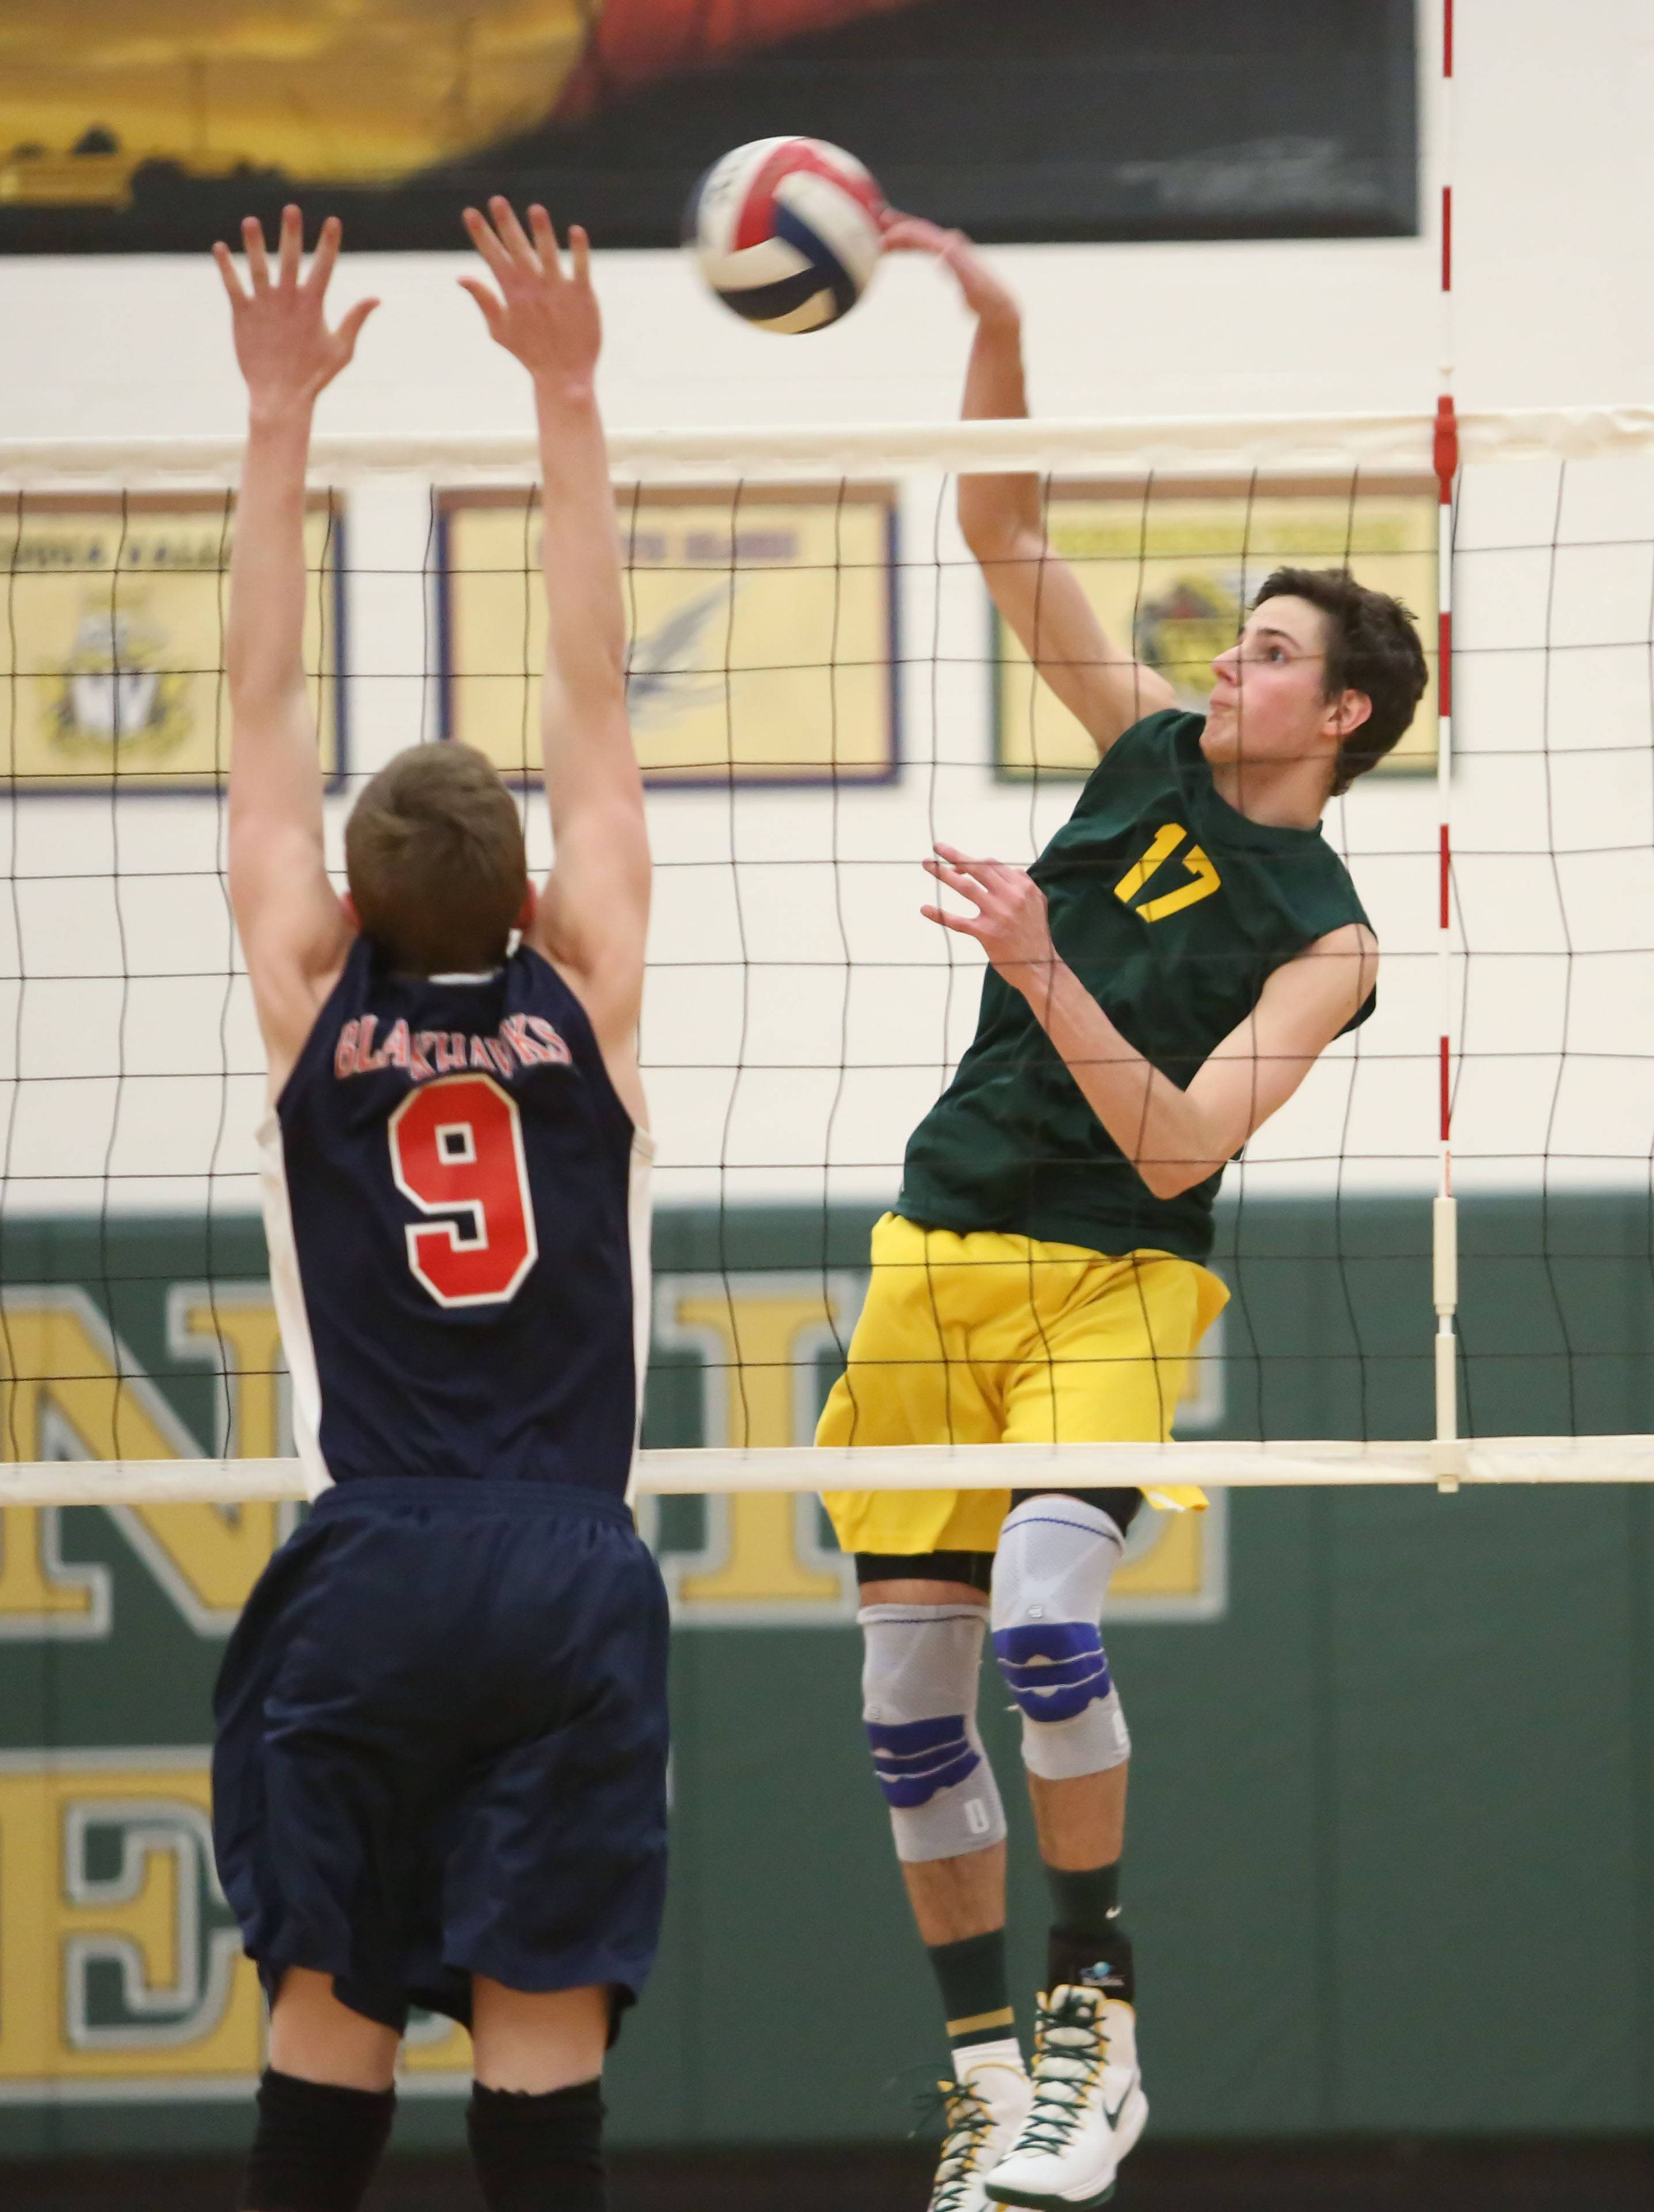 Waubonsie Valley's Michael Simmons, right, hits the ball as Adam Fitzgerald of West Aurora defends in boys volleyball action on Monday in Aurora.